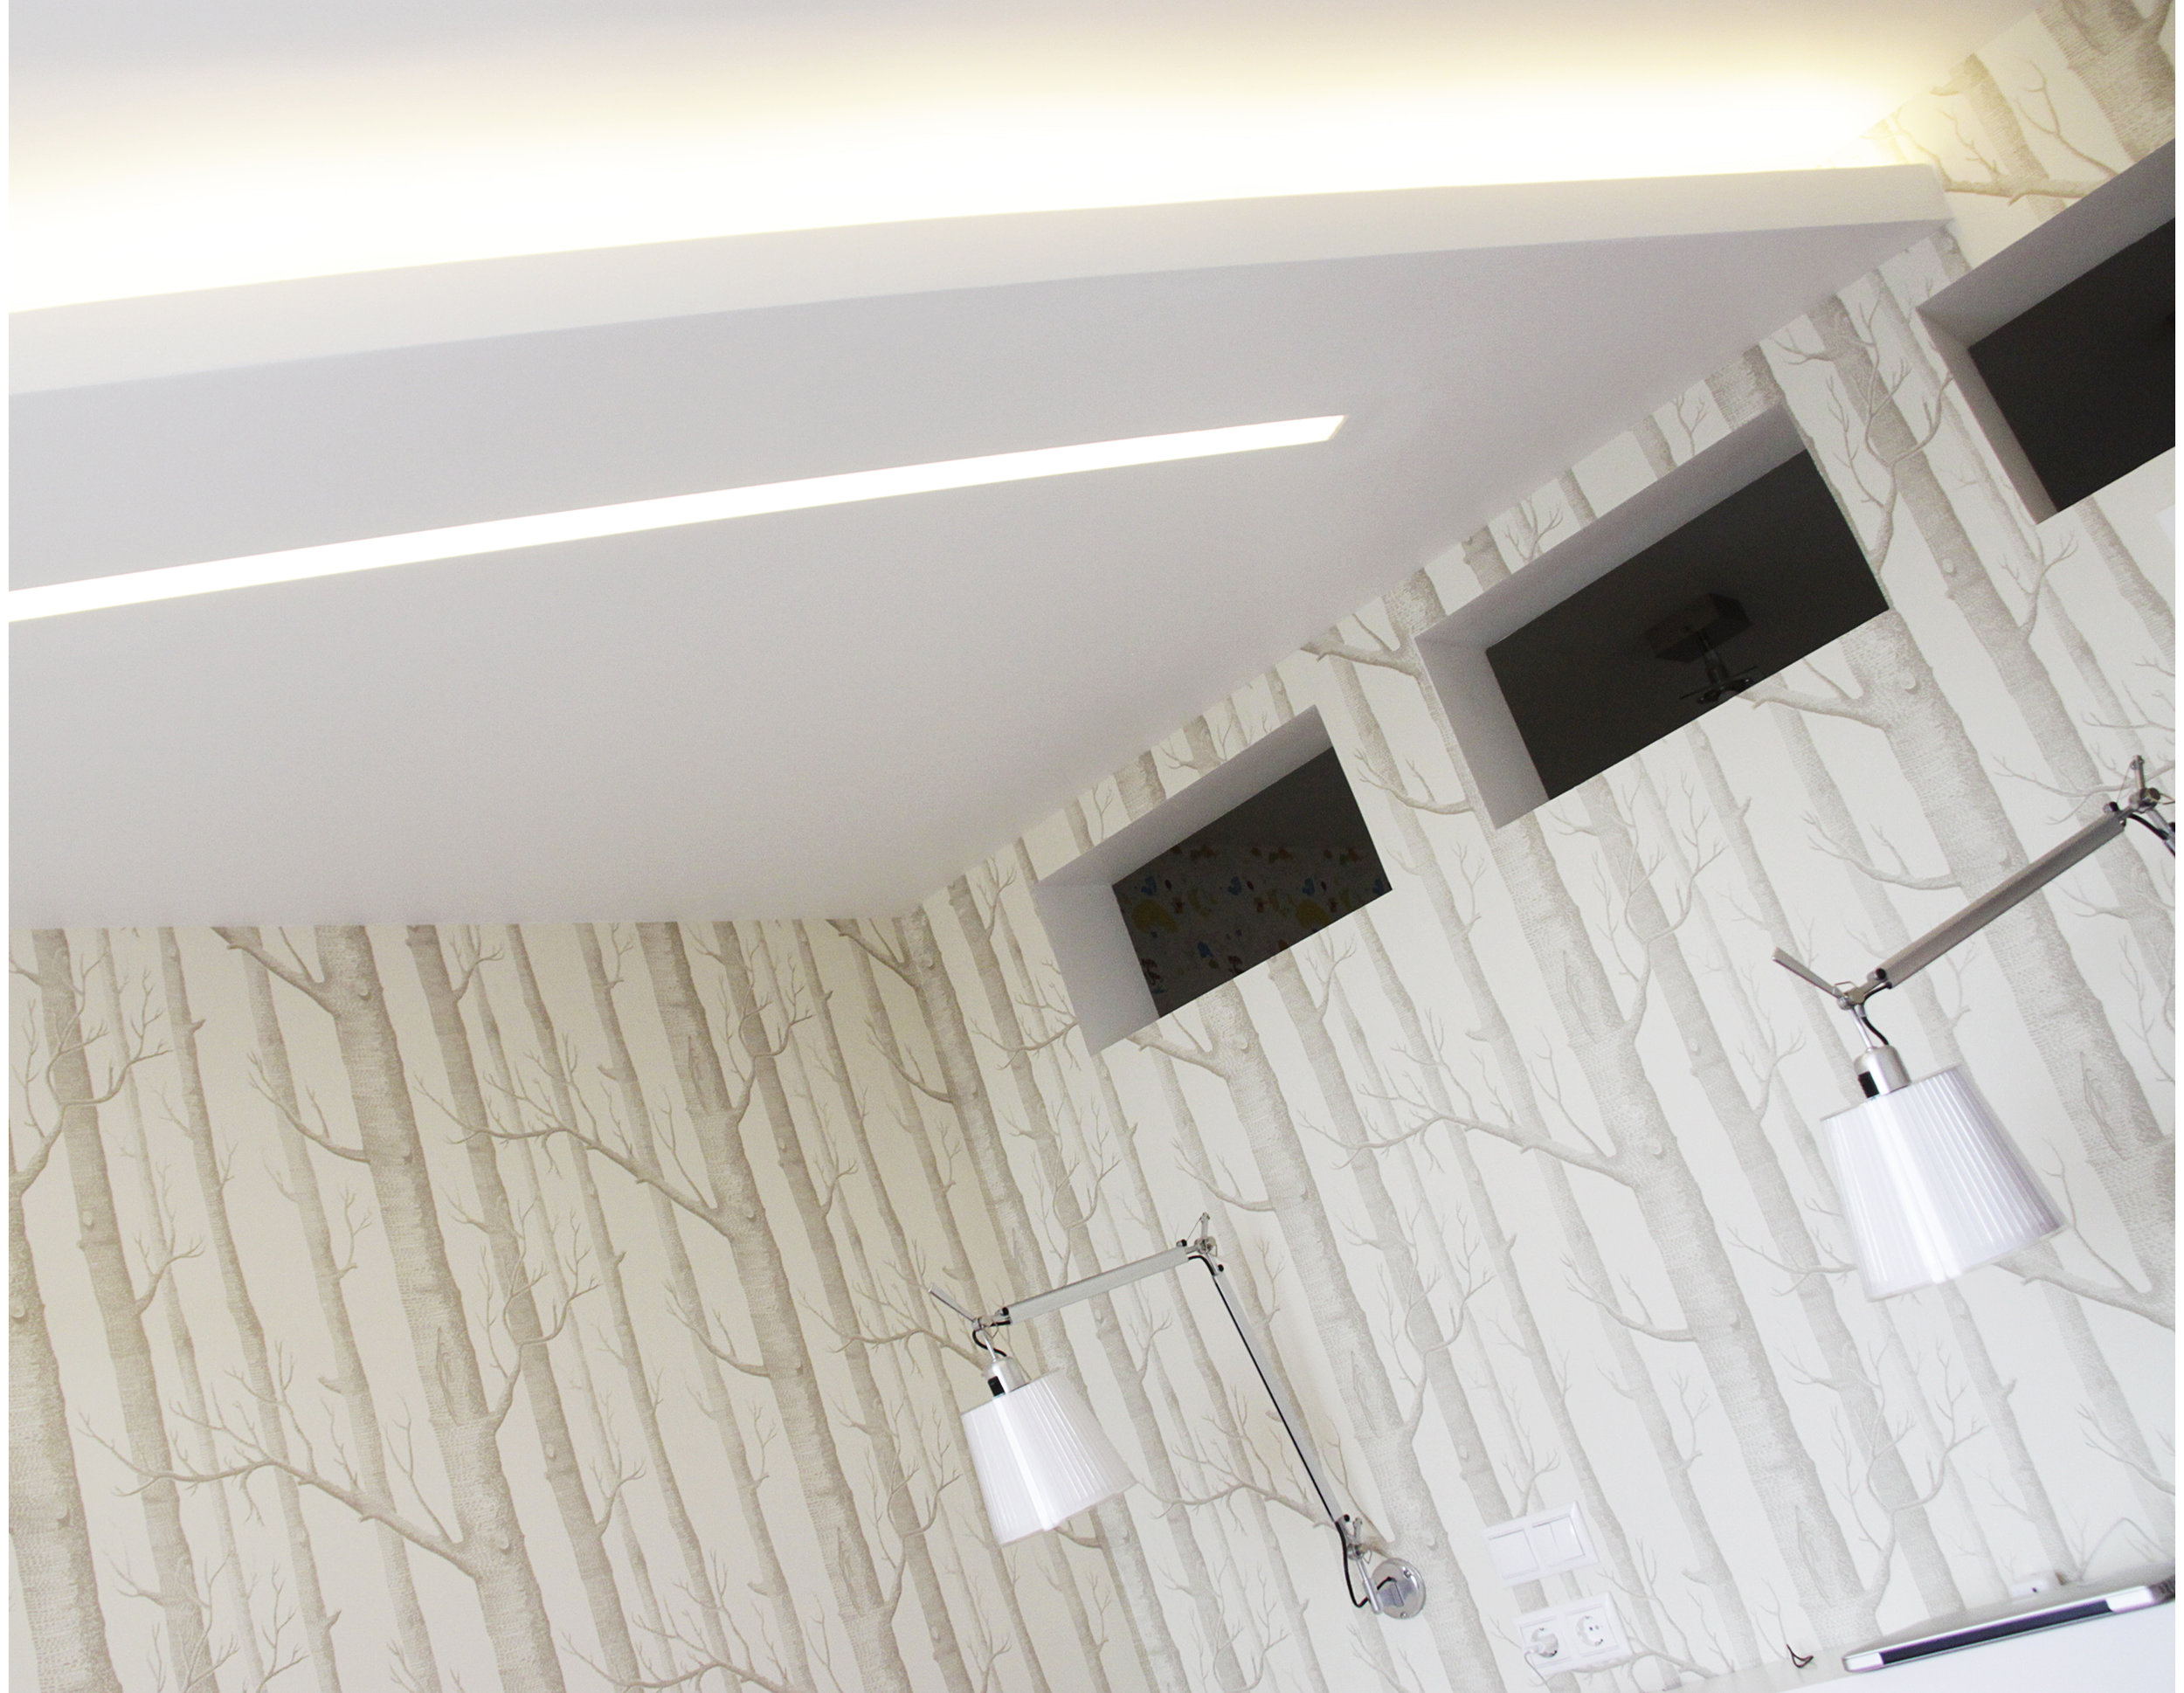 Copy of Suspended ceiling with decorative LED lighting